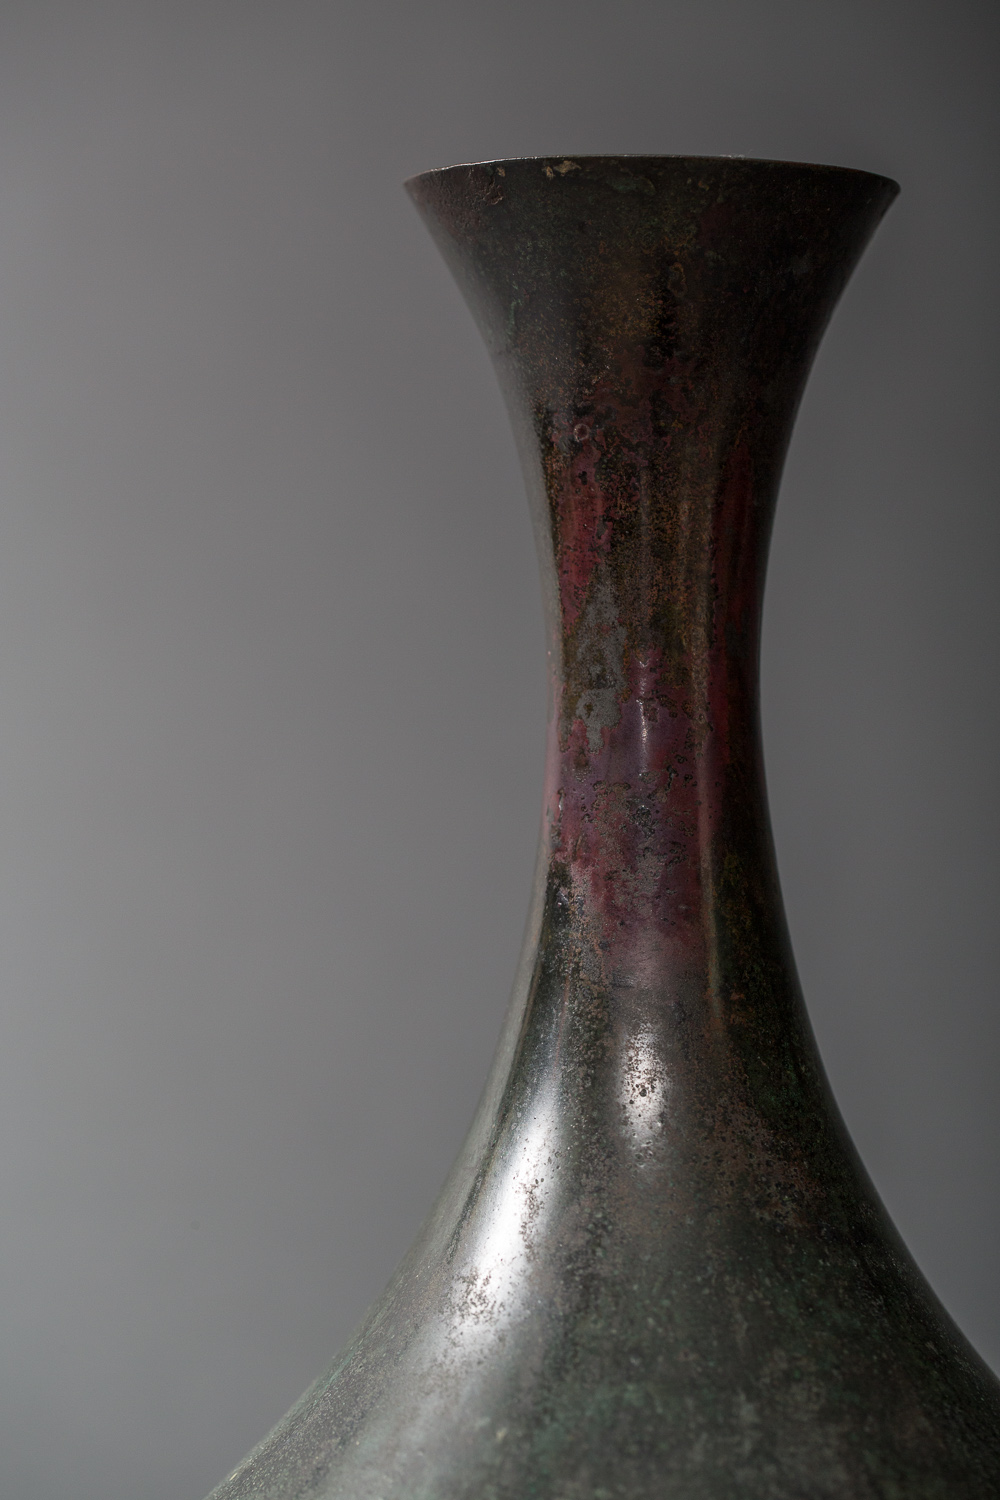 Korean 18th Century Bronze Vase